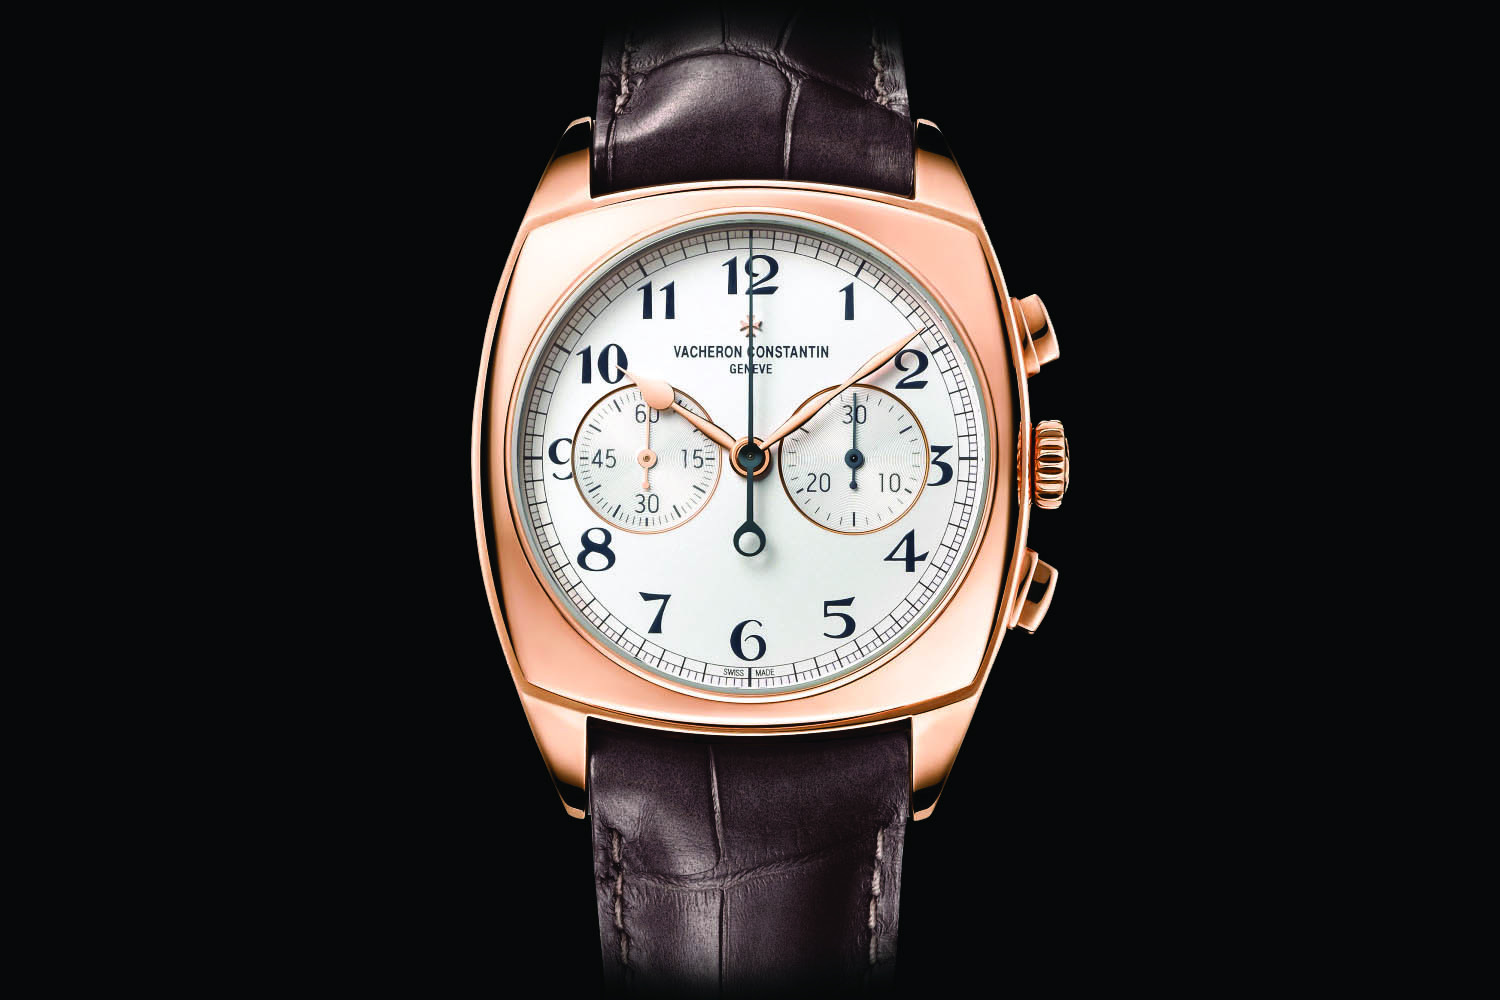 vacheron-constantin-harmony-chronograph-small-model-1142-pink-gold